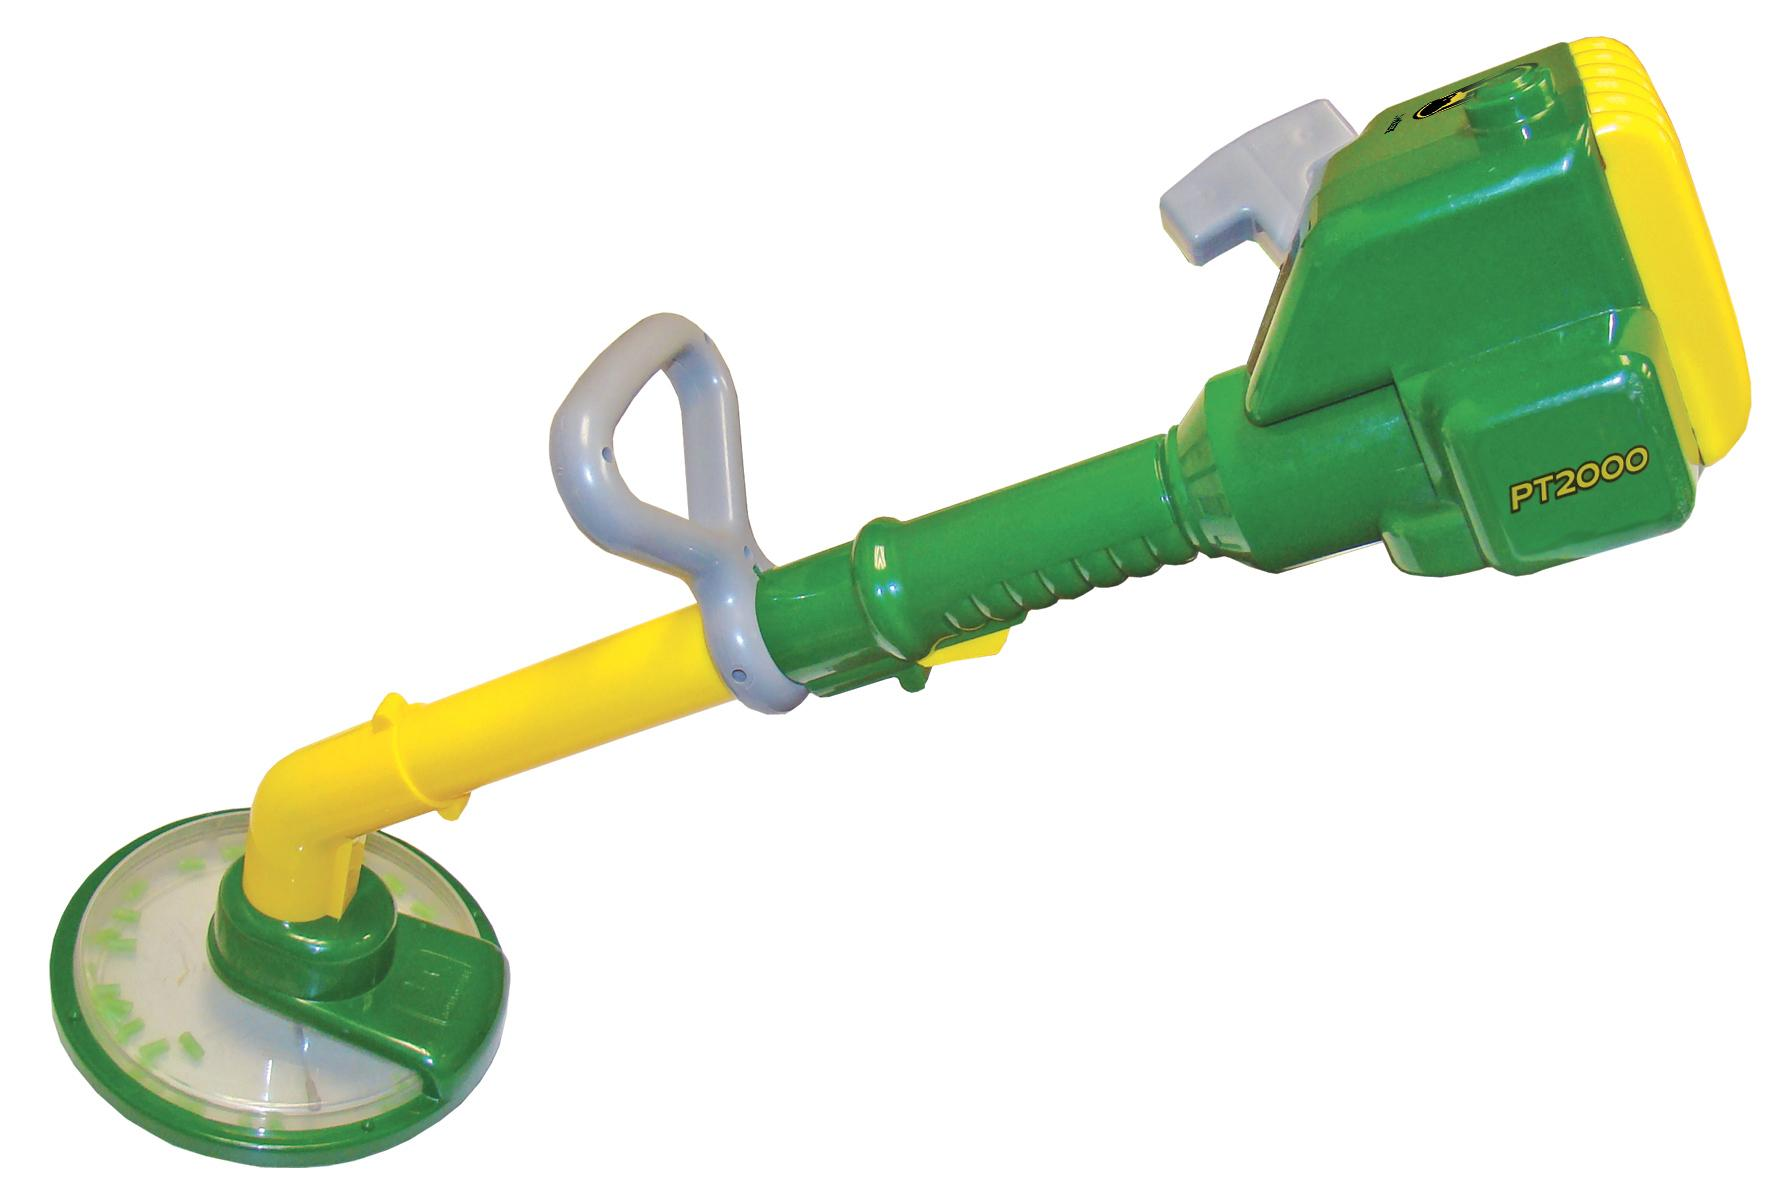 John Deere Power Trimmer Toy at Growing Tree Toys